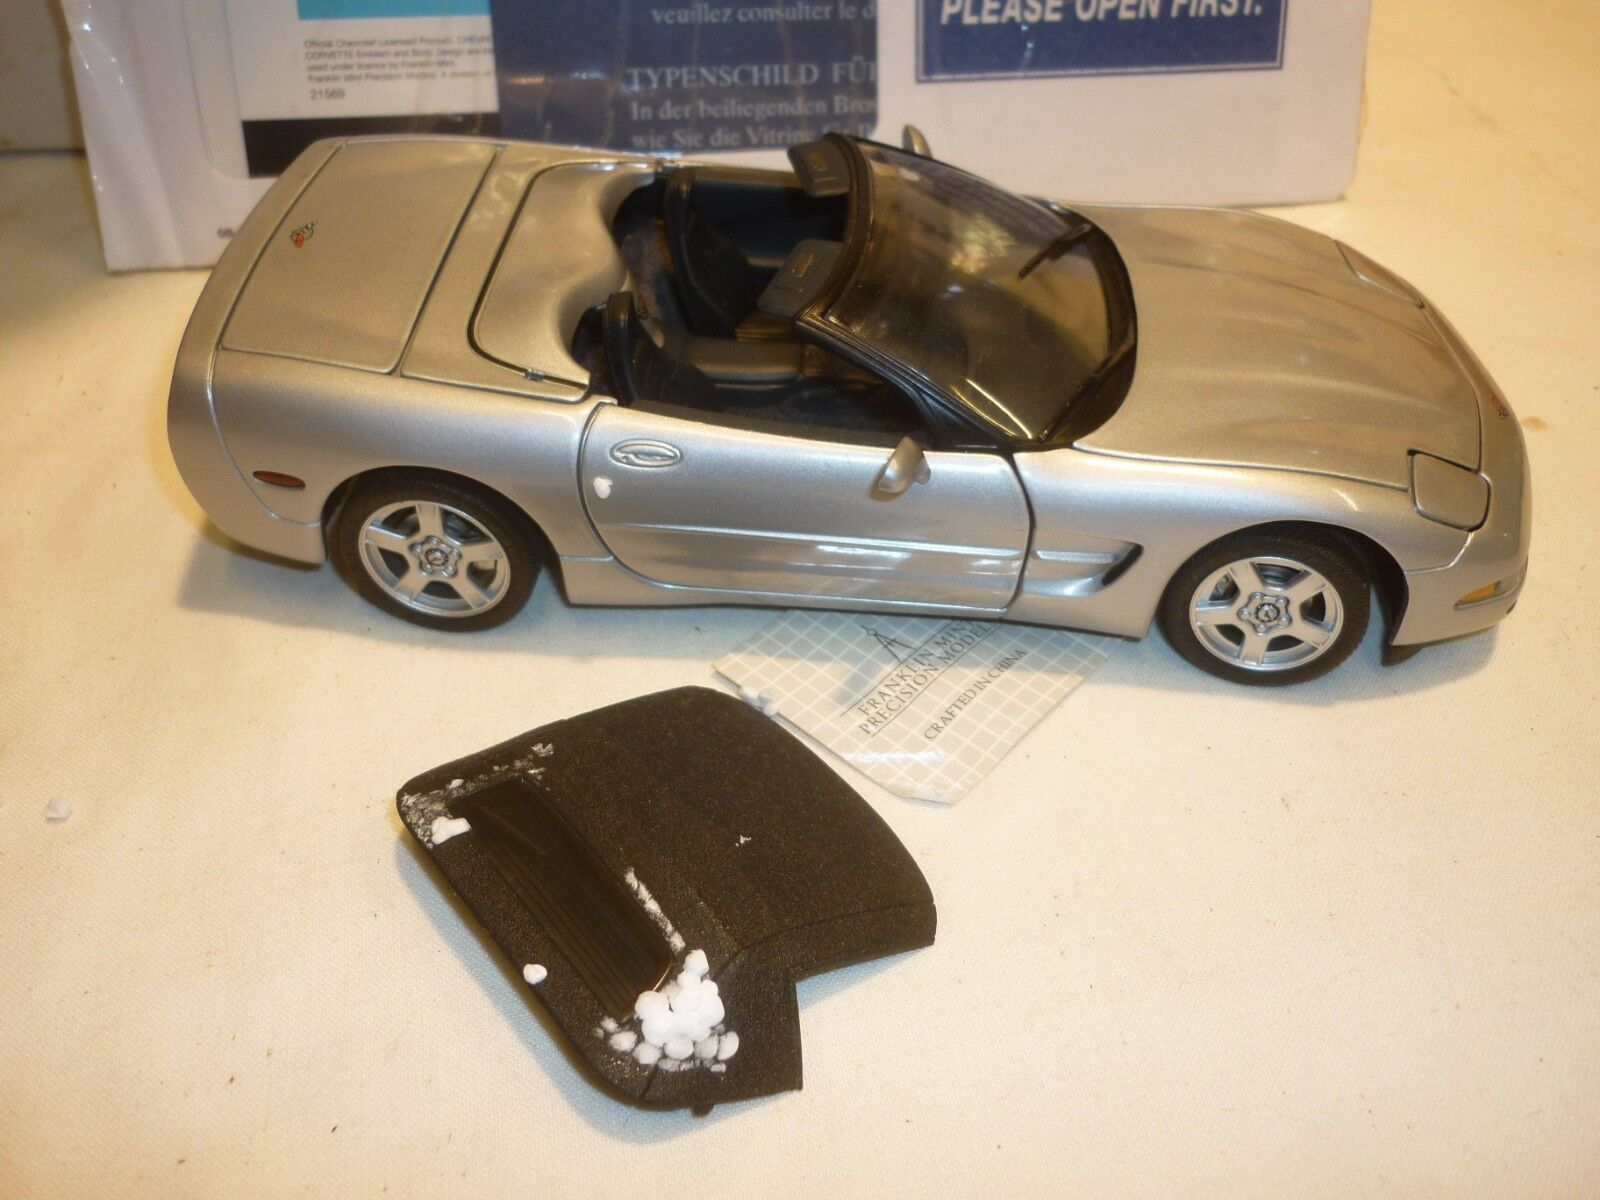 A Franklin mint scale model of a 1989 Chevrolet Corvette, boxed with paperwork